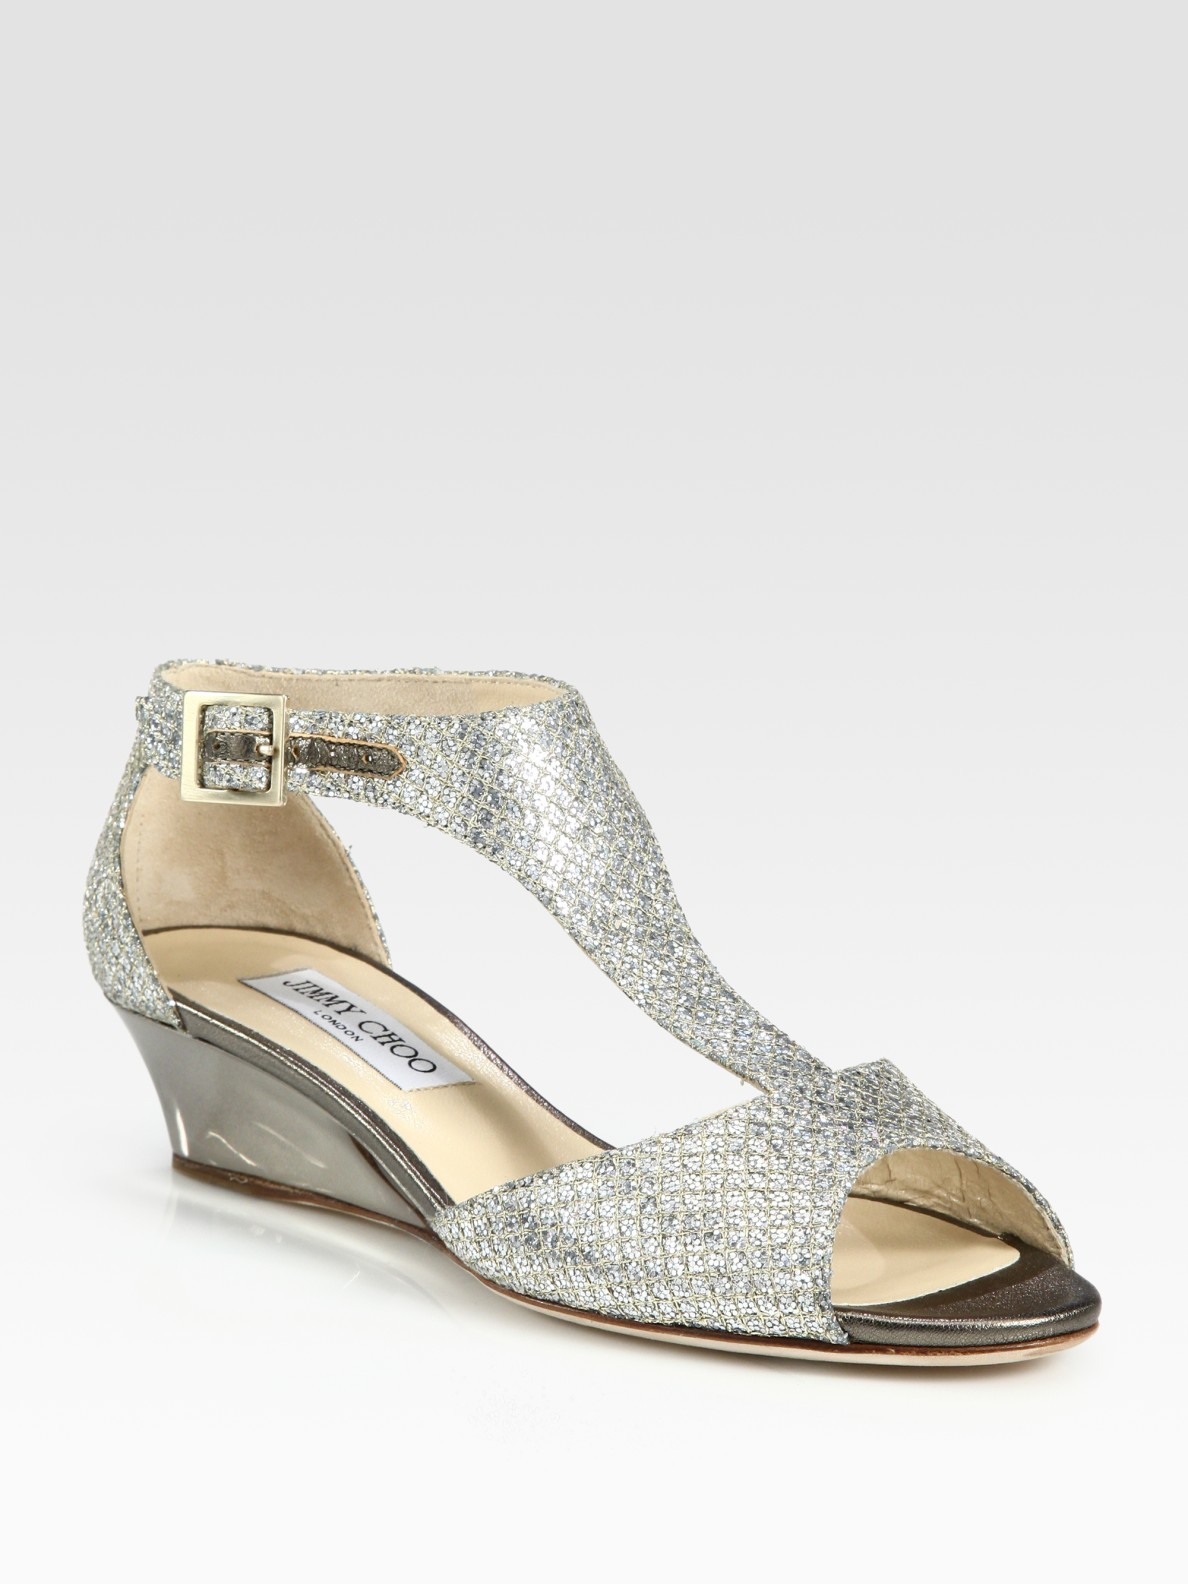 Silver Shoes With A Wedge Heel